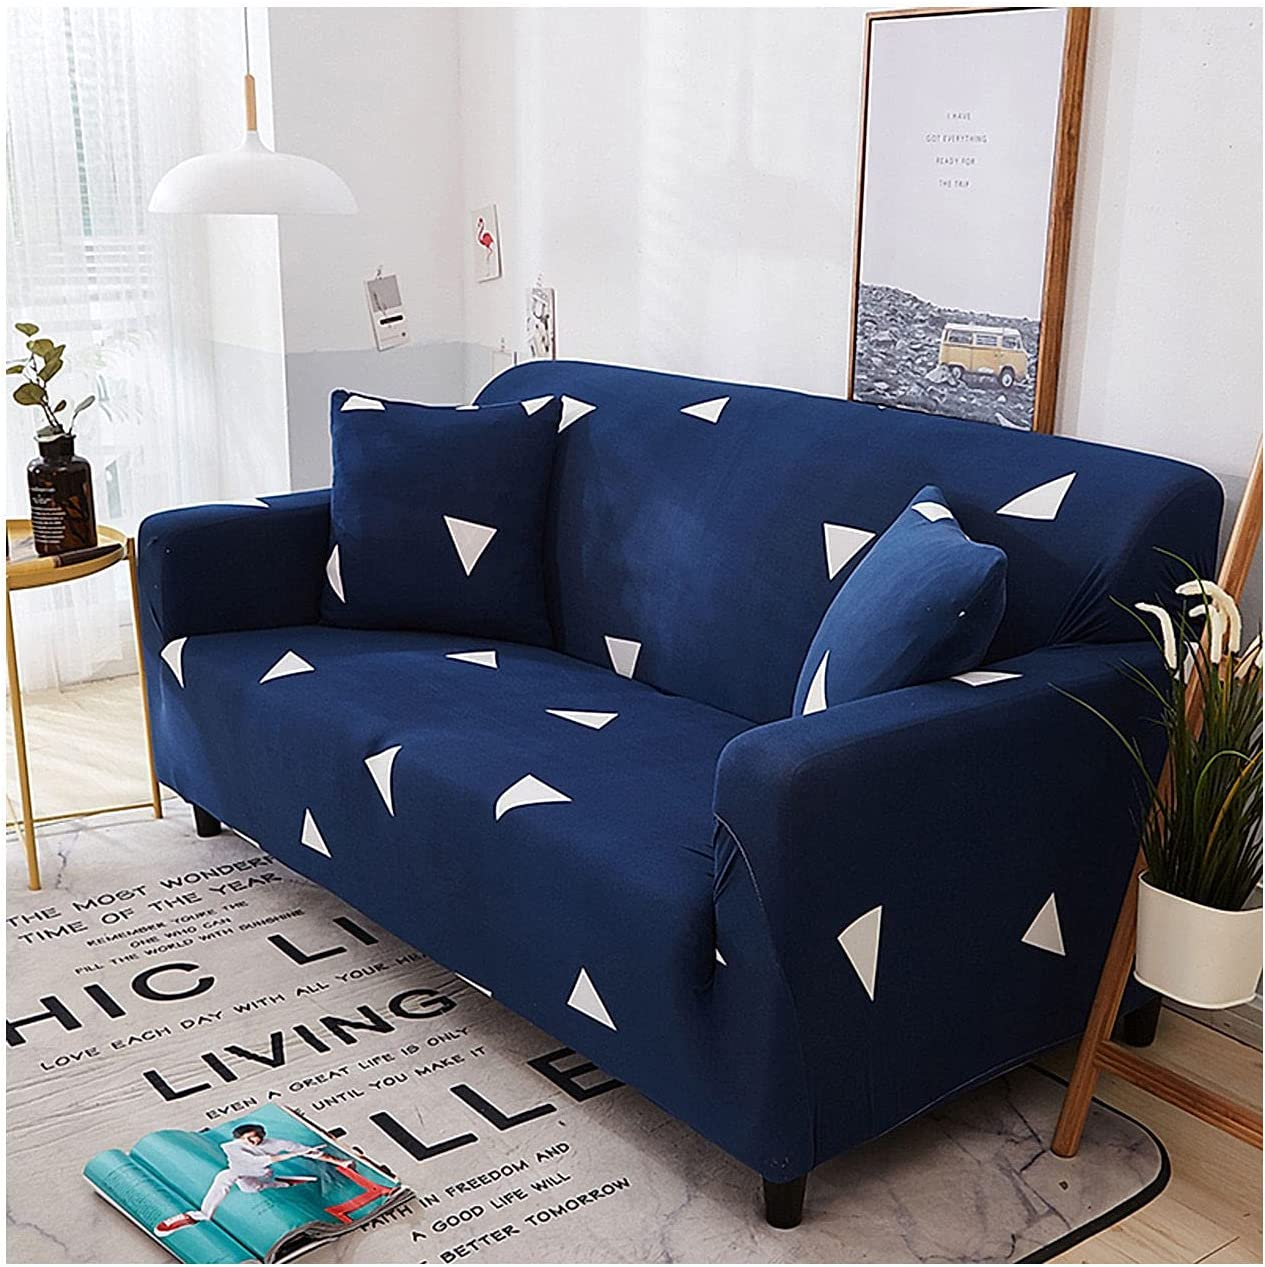 Spandex Stretch Sofa Beauty products Slipcover Non Cover wit Popular shop is the lowest price challenge Durable Couch Slip